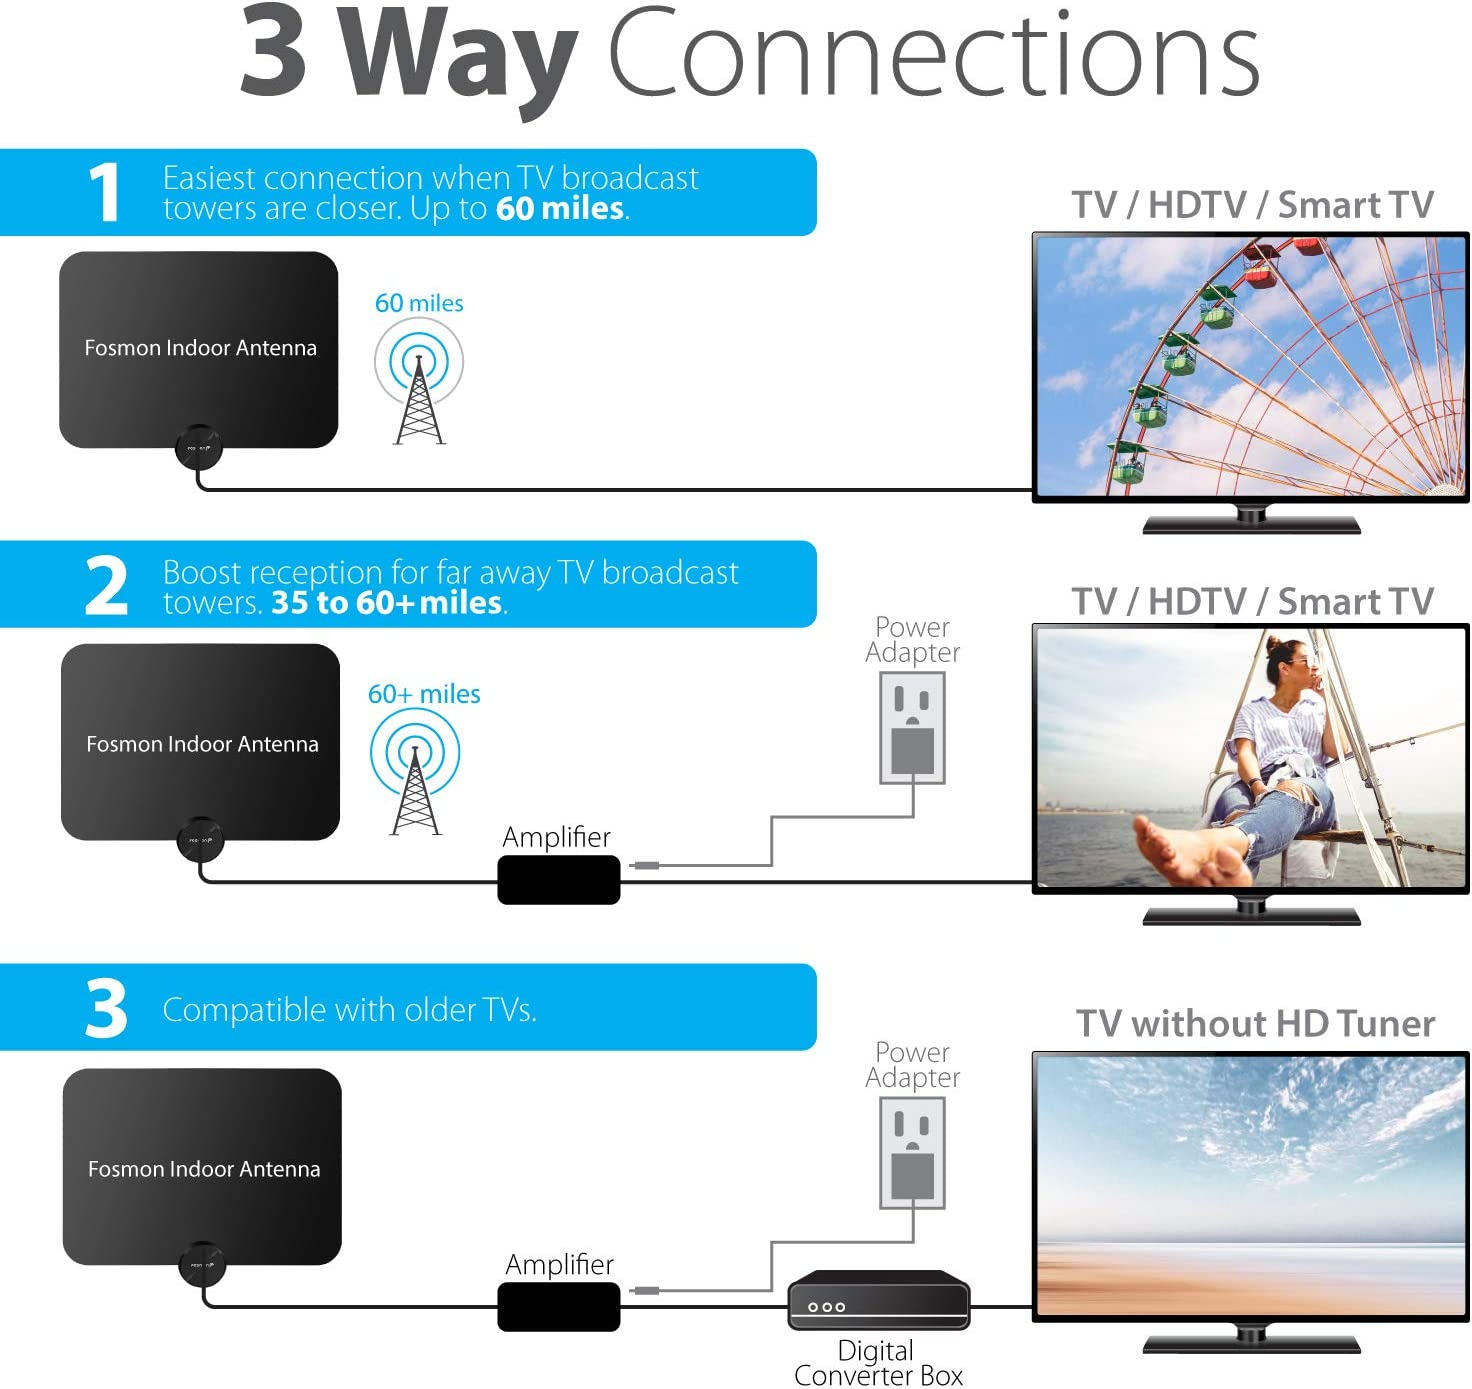 2020 Latest Ultra Thin Indoor Digital TV Antenna Up to 120 Miles Ranges ATSC 3.0 White 10FT Coaxial Cable Fosmon HDTV Antenna VHF 4K Ready 1080p Free TV Channel Amplifier Signal Booster UHF